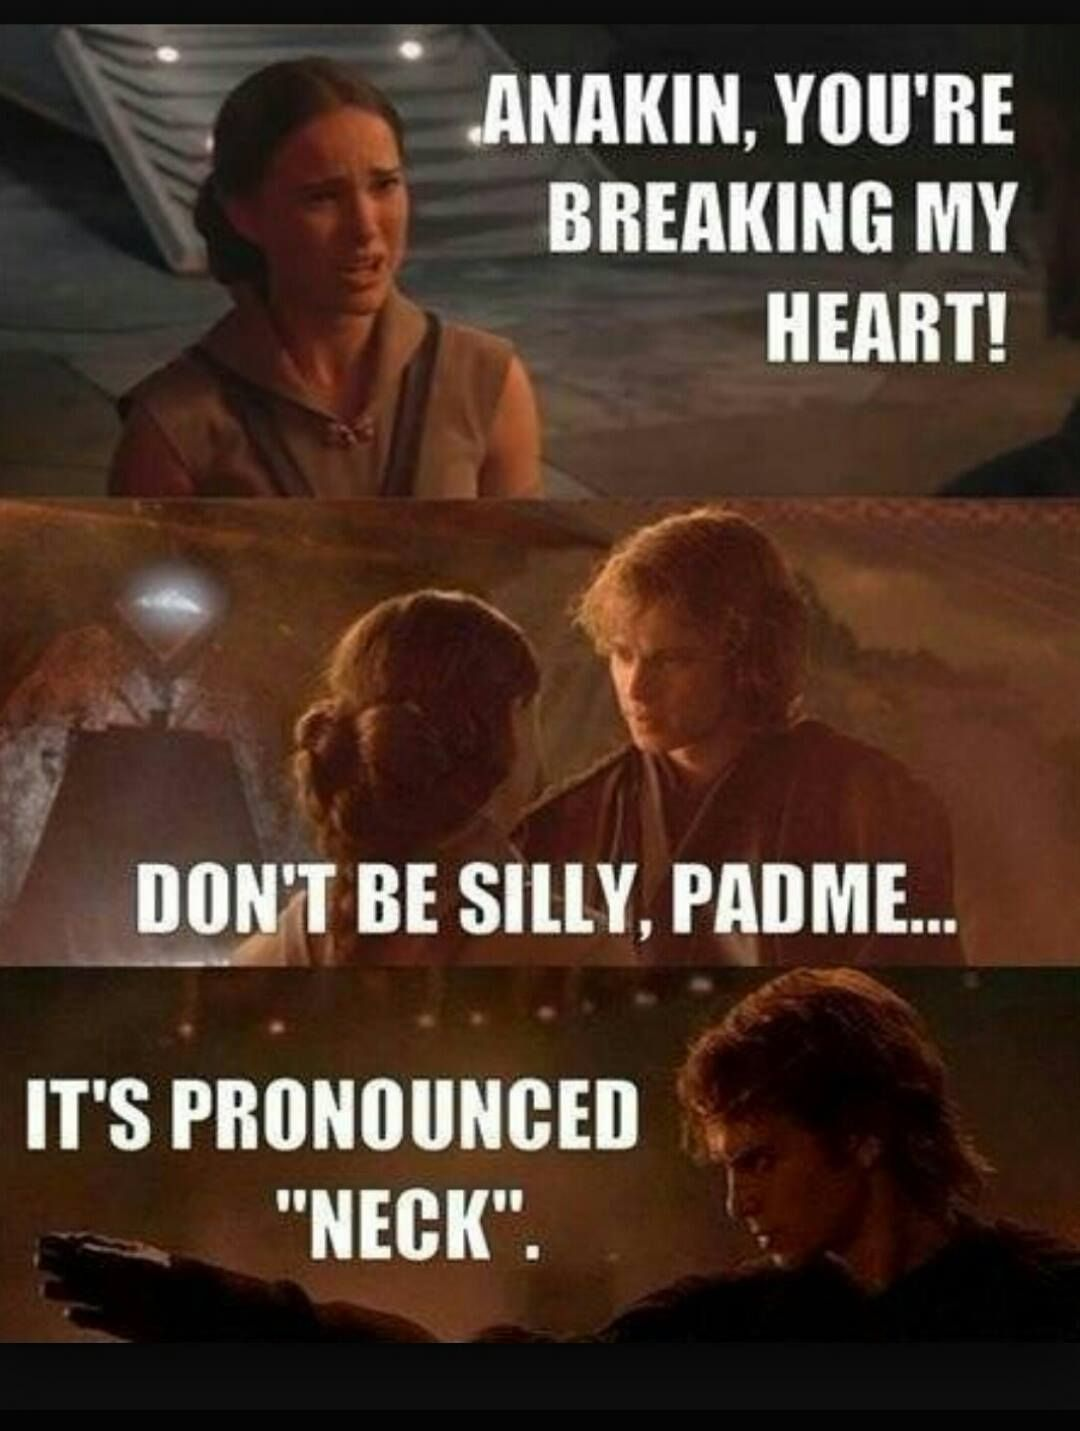 Pin By Nicki K On I 3 Star Wars Thanks Roxy For The Idea I D Pin To Your Board But Idk How Star Wars Humor Star Wars Jokes Funny Star Wars